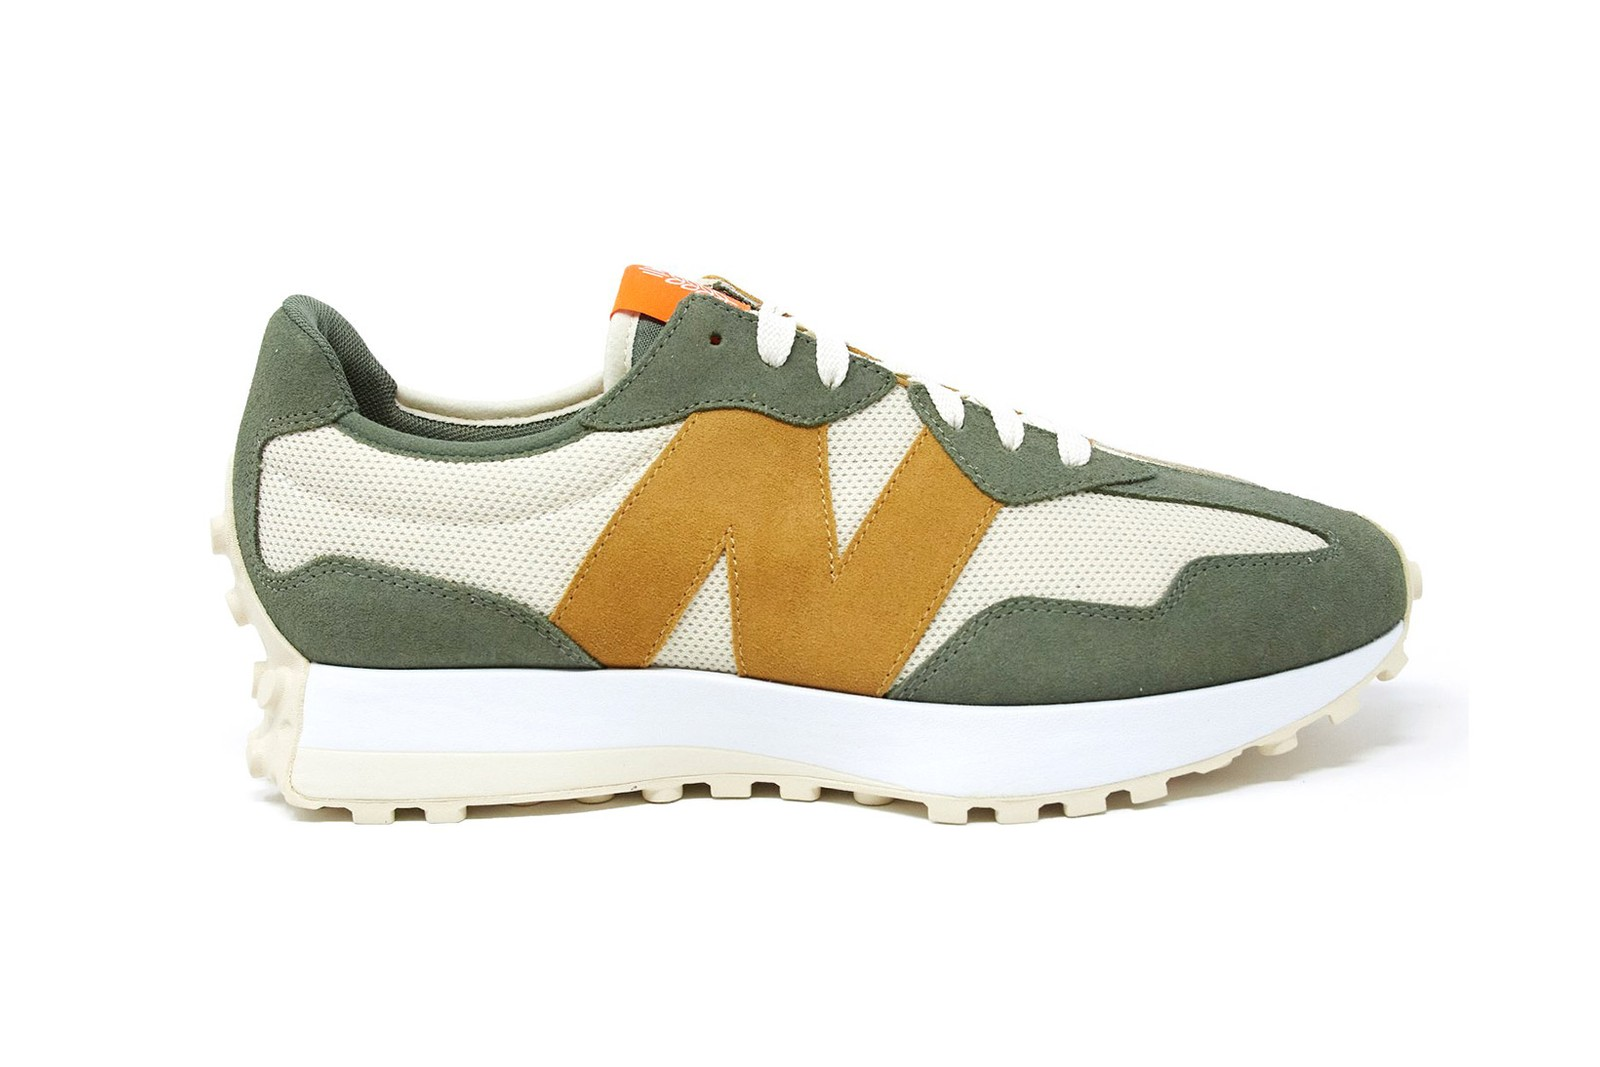 Todd Snyder New Balance 327 Sneakers Kicks Shoes Footwear Olive Green Brown